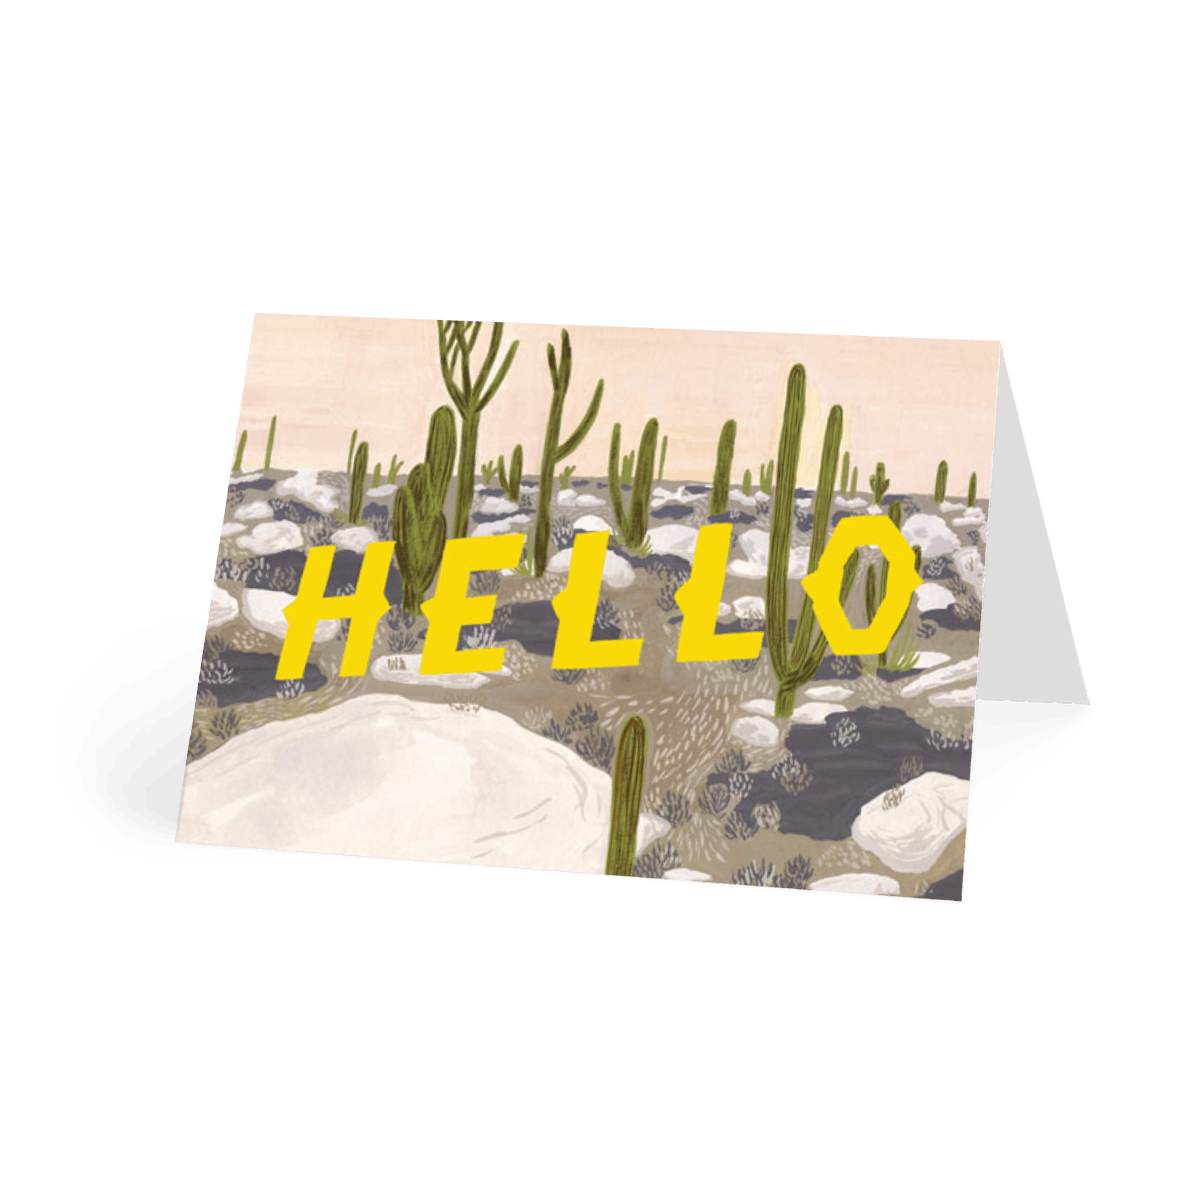 Https%3a%2f%2fwww.papier.com%2fproduct image%2f16959%2f14%2fhello desert 4461 front 1485275827.png?ixlib=rb 1.1